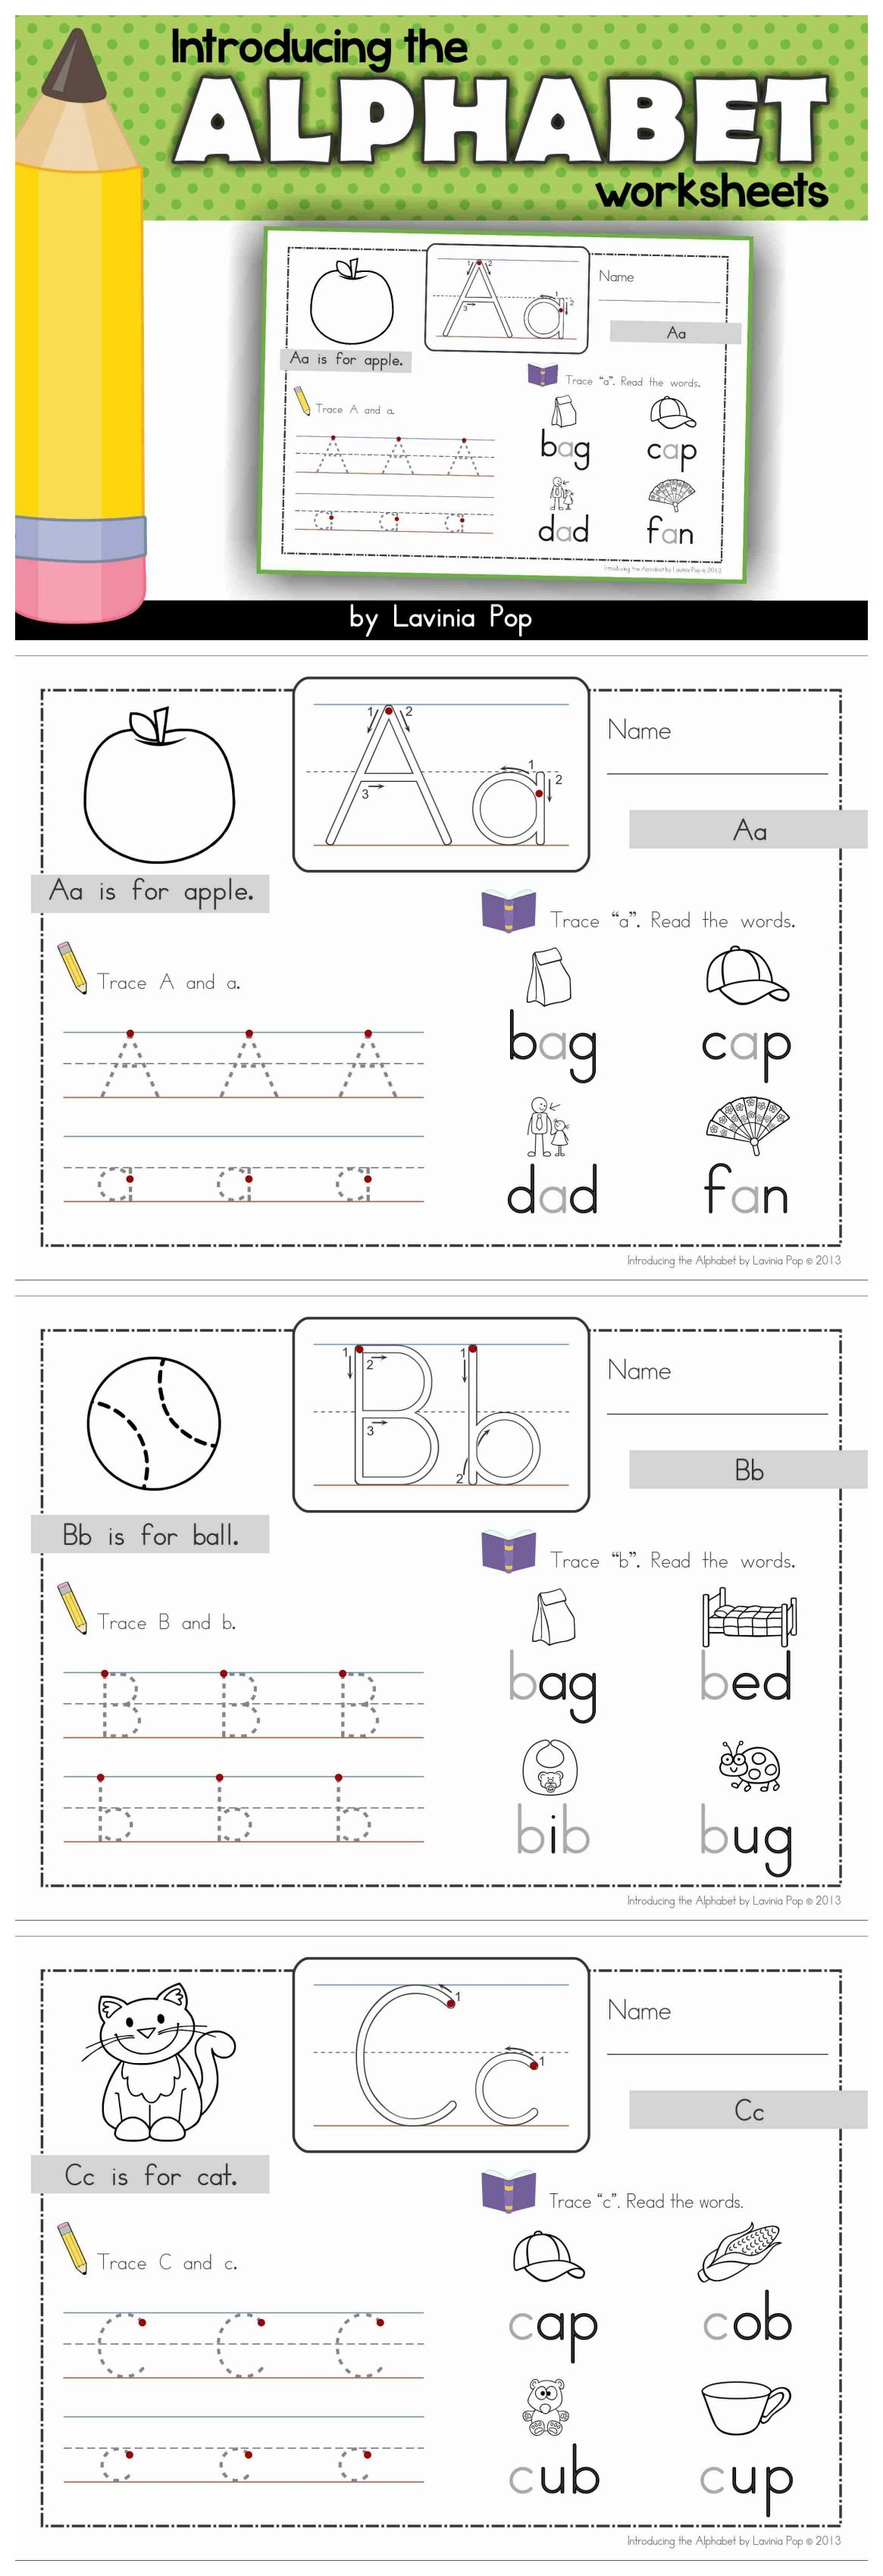 Introducing The Alphabet Worksheets The Focus Is On Both